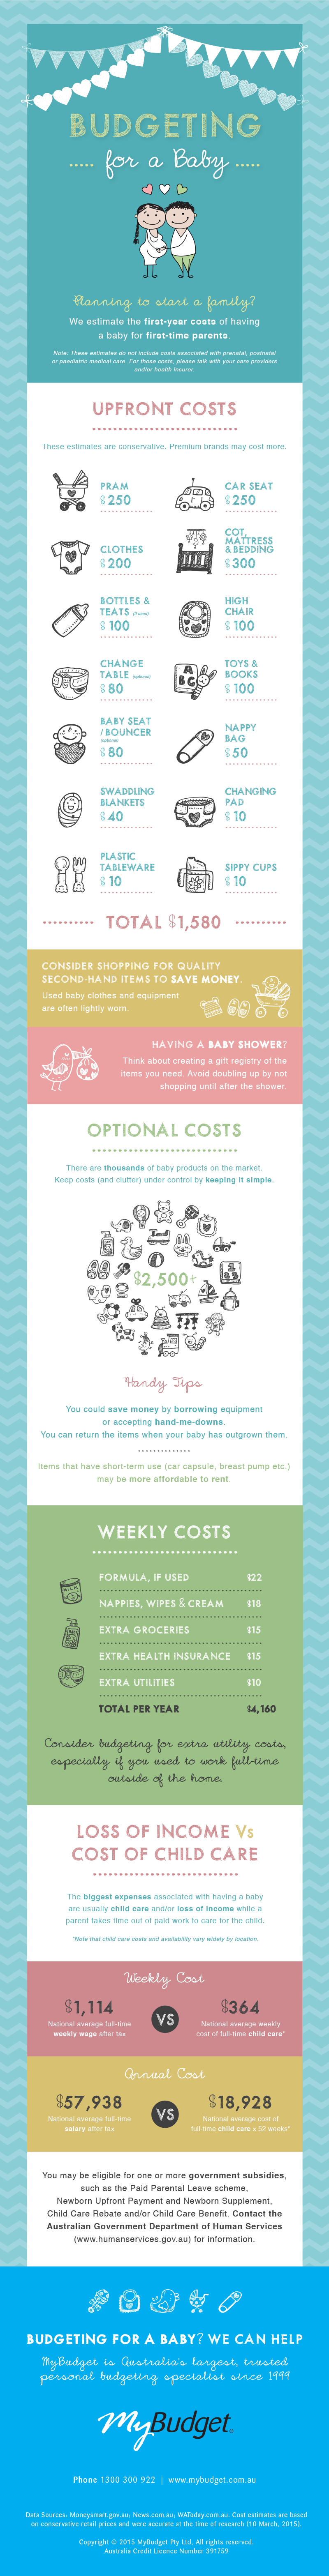 MyBudget Budgeting for a Baby